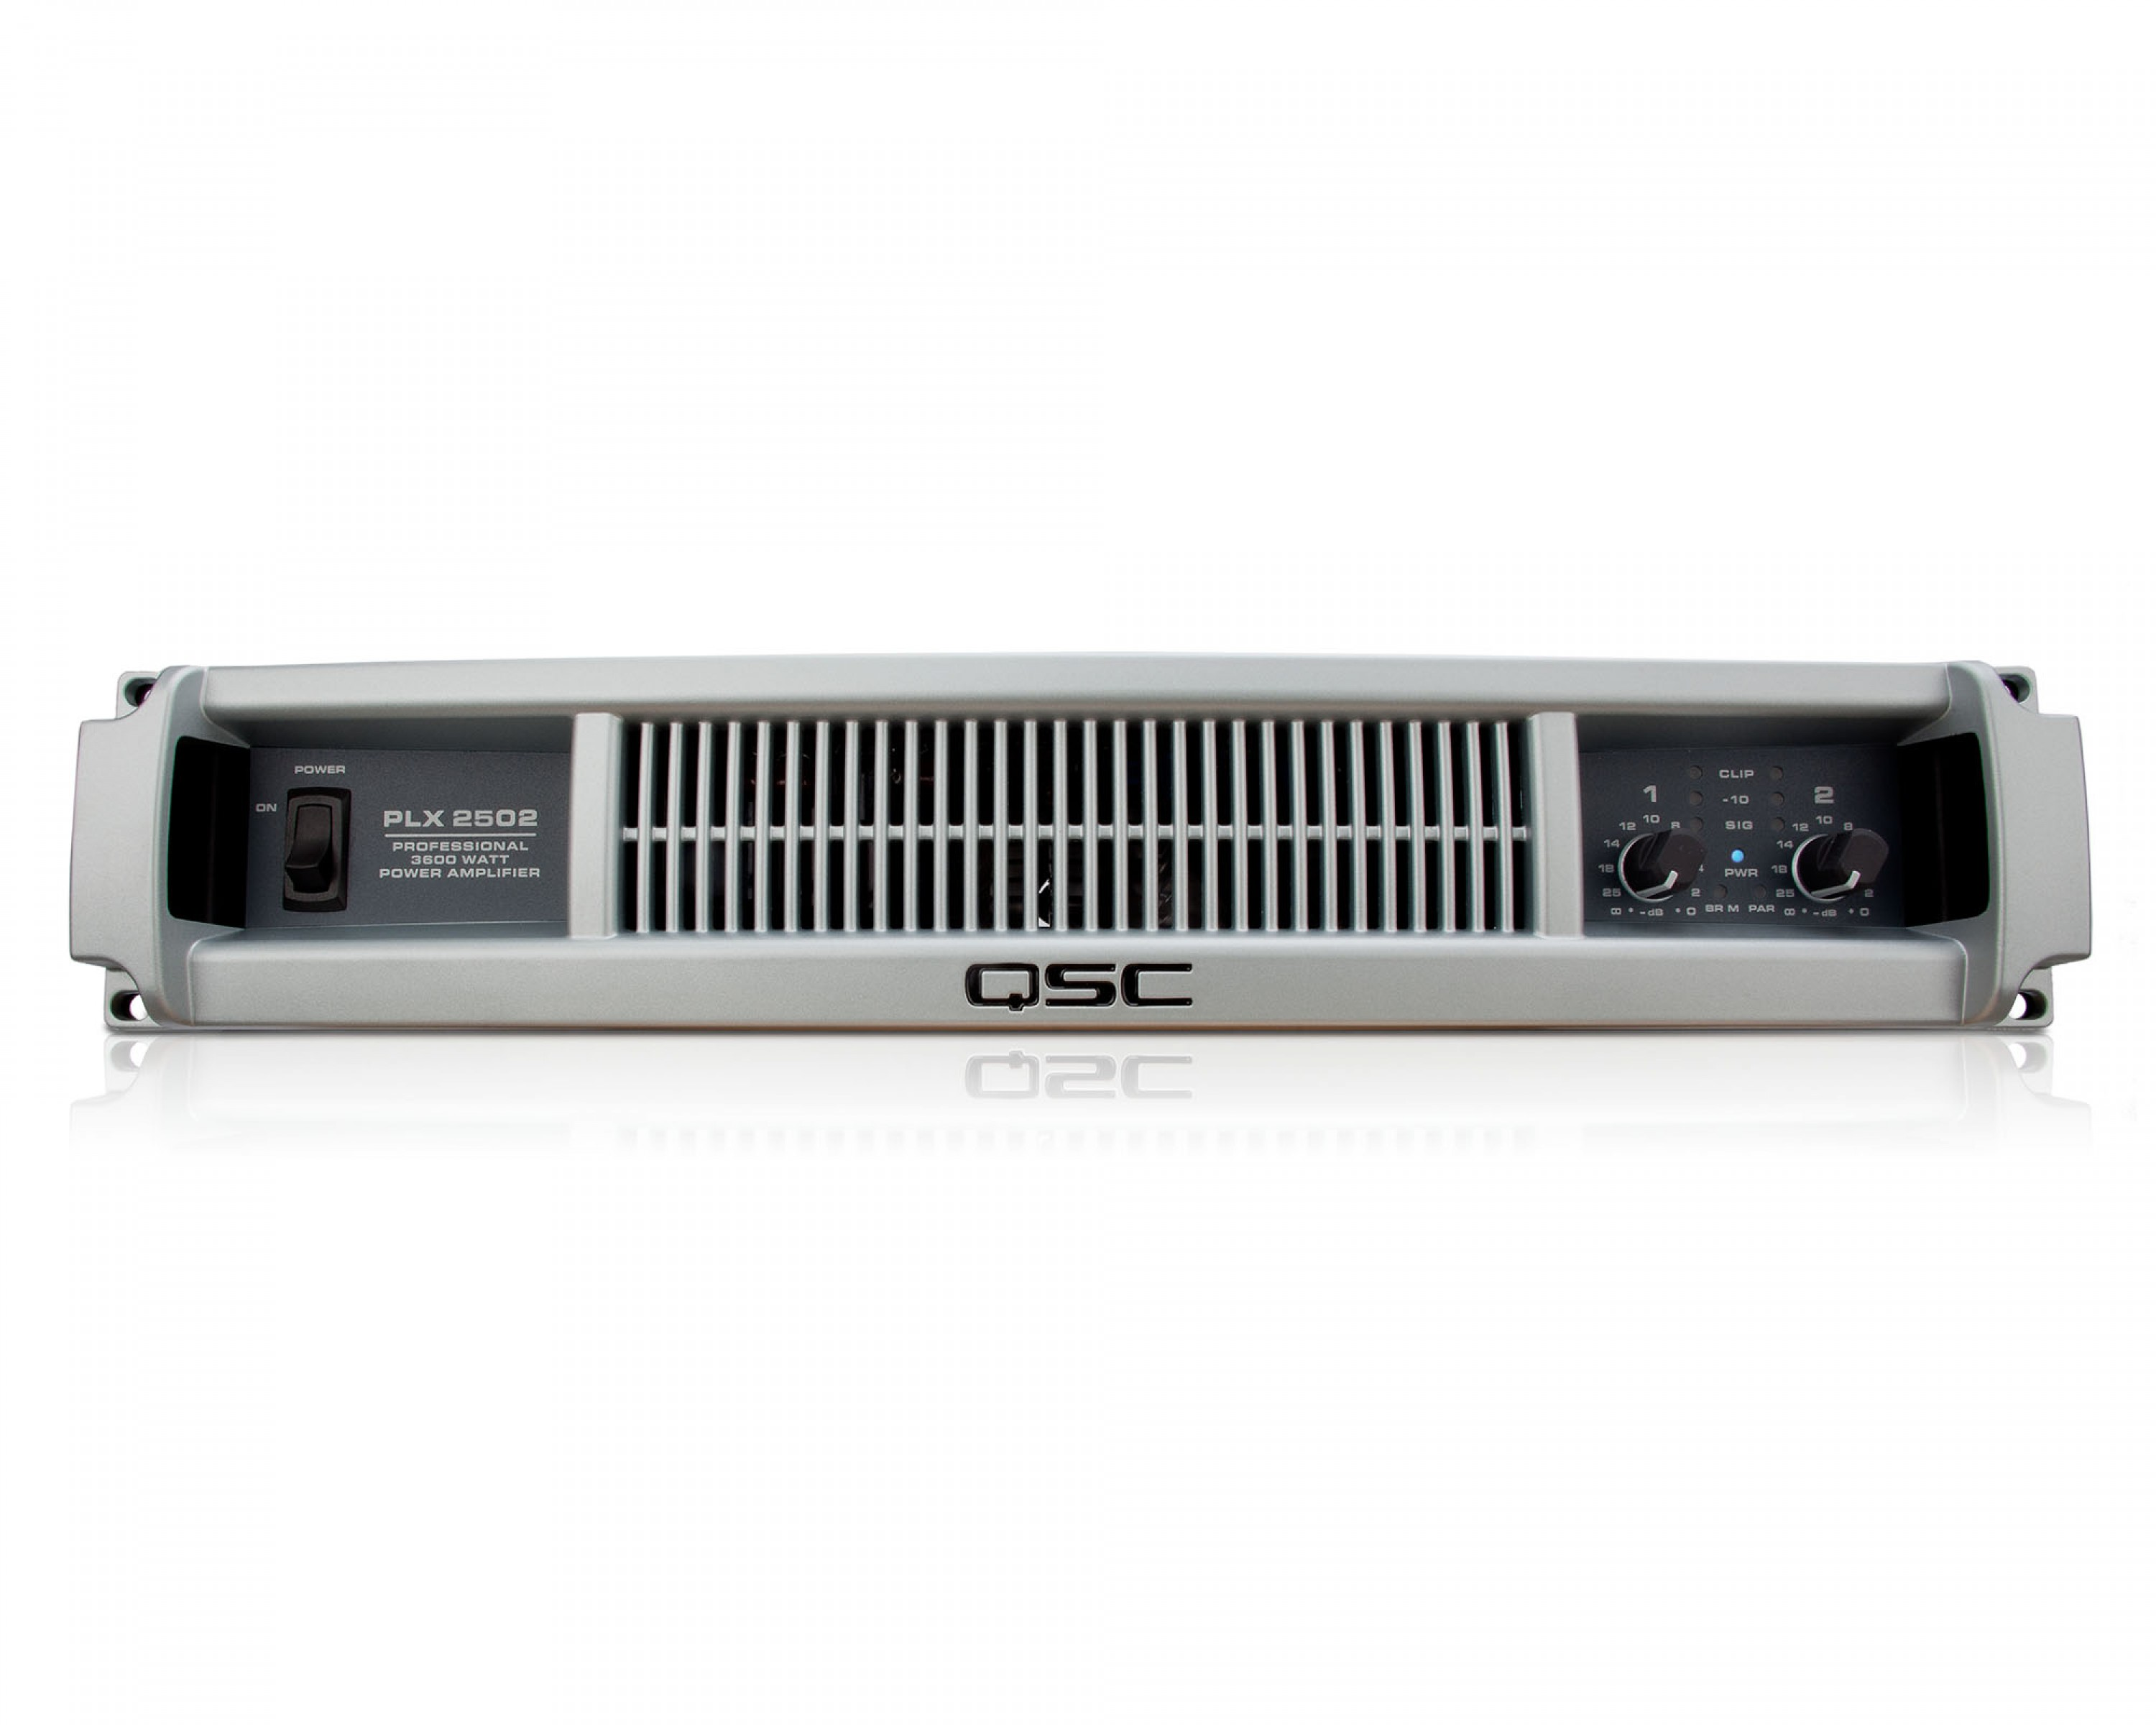 Plx2502 Powerlight Amp 2x750w Qsc Power Amplifiers Leisuretec Uk 25 Watt Amplifier